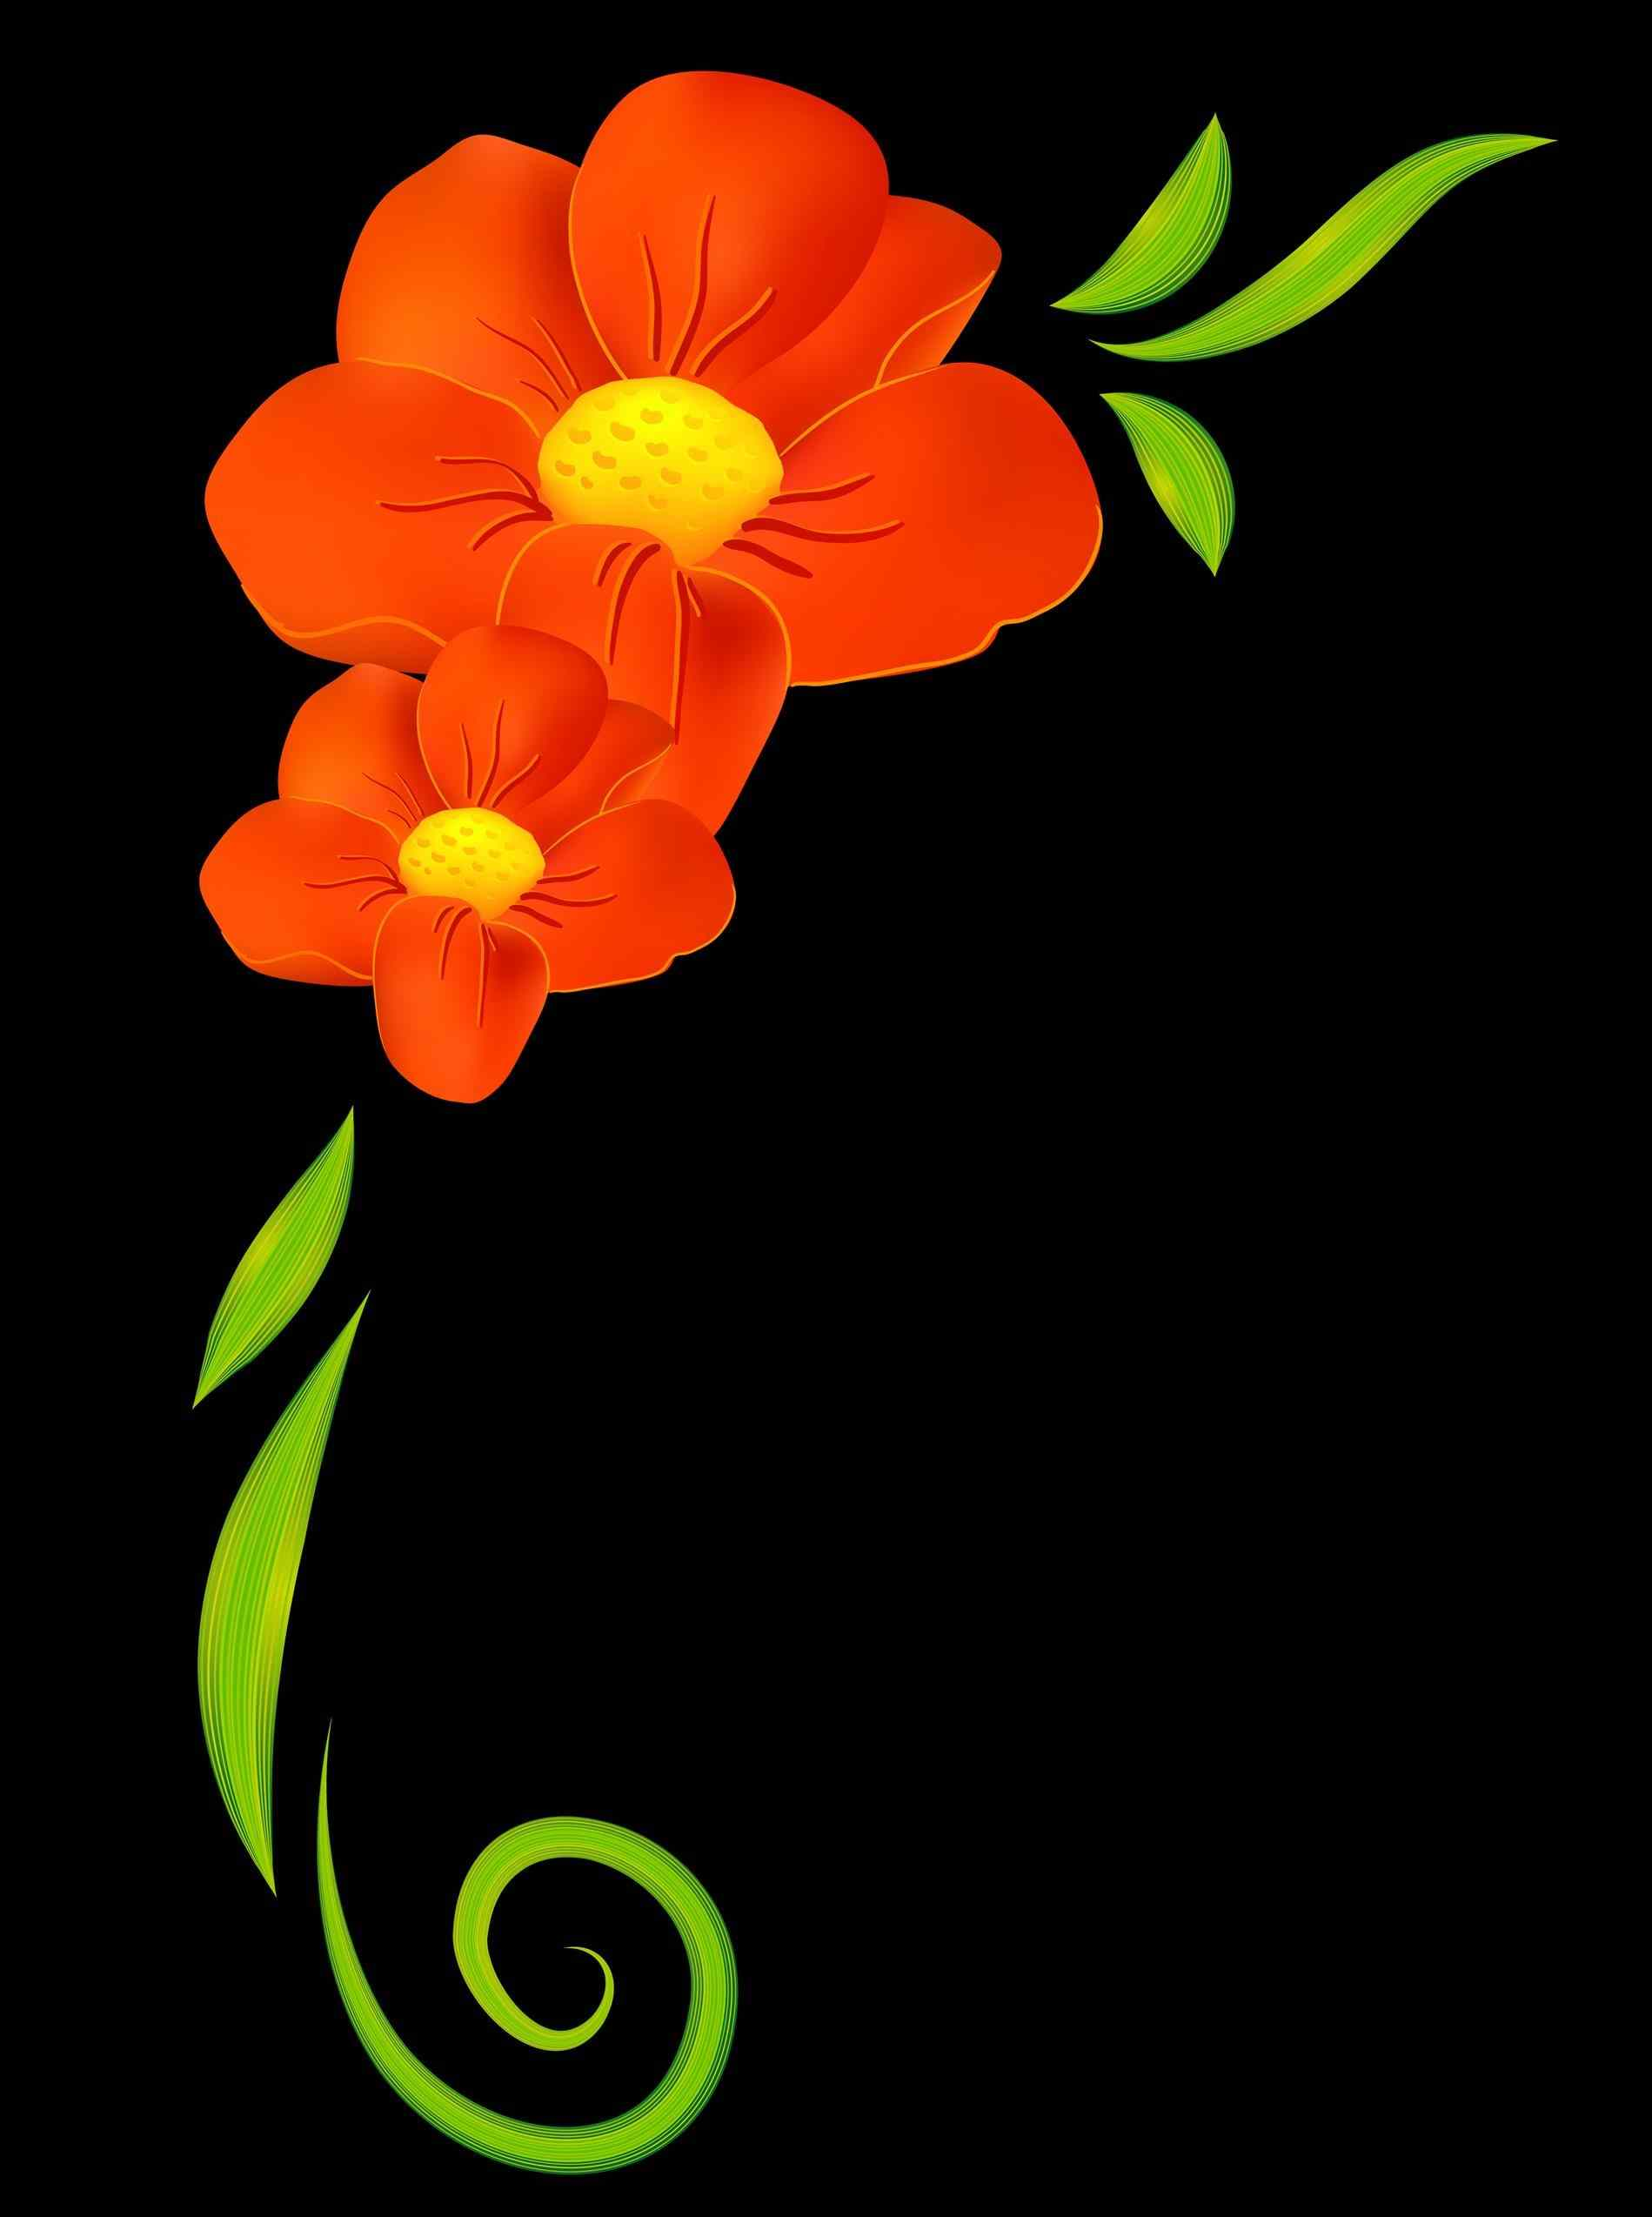 Iris Flower Clipart at GetDrawings.com | Free for personal use Iris ...